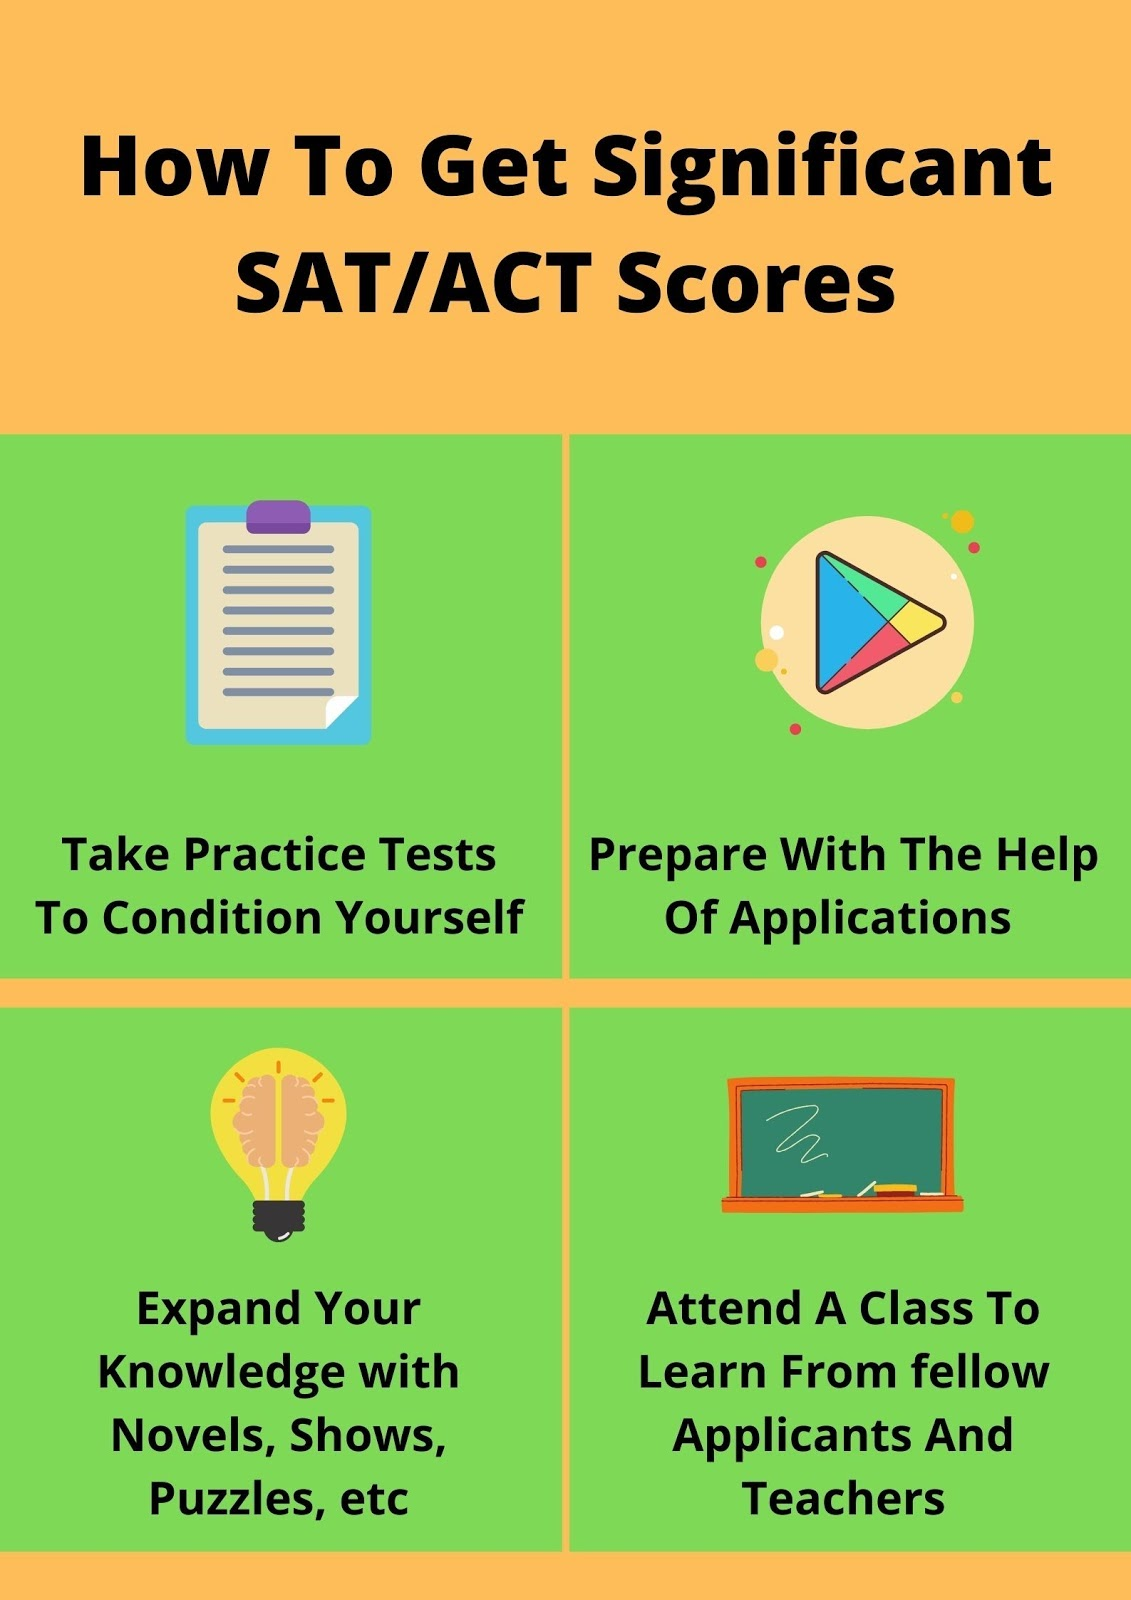 How to get significant SAT/ACT Scores